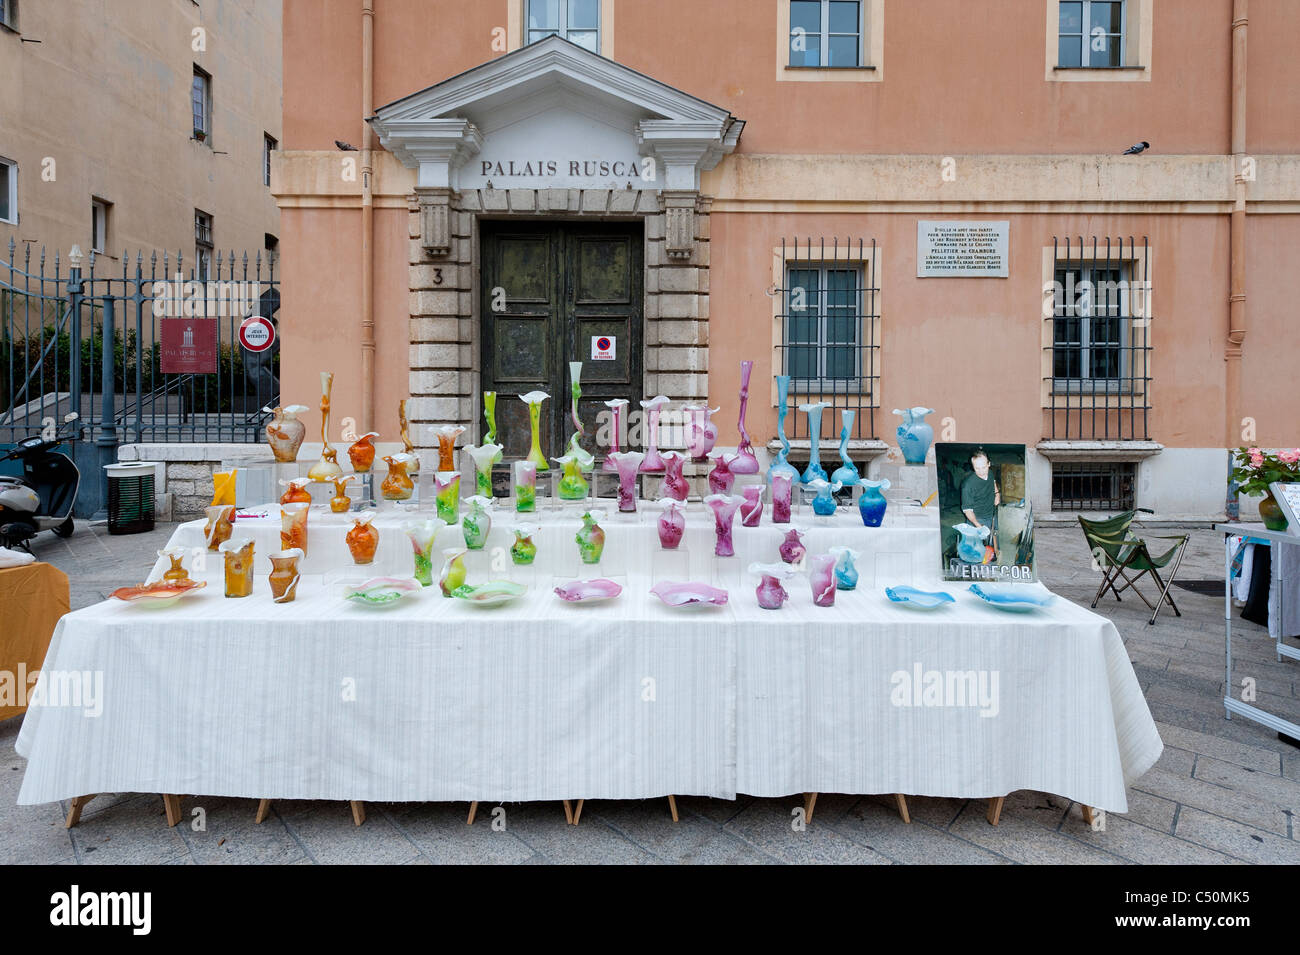 Market stall in Place du Palais-de-Justice, Nice, France - Stock Image